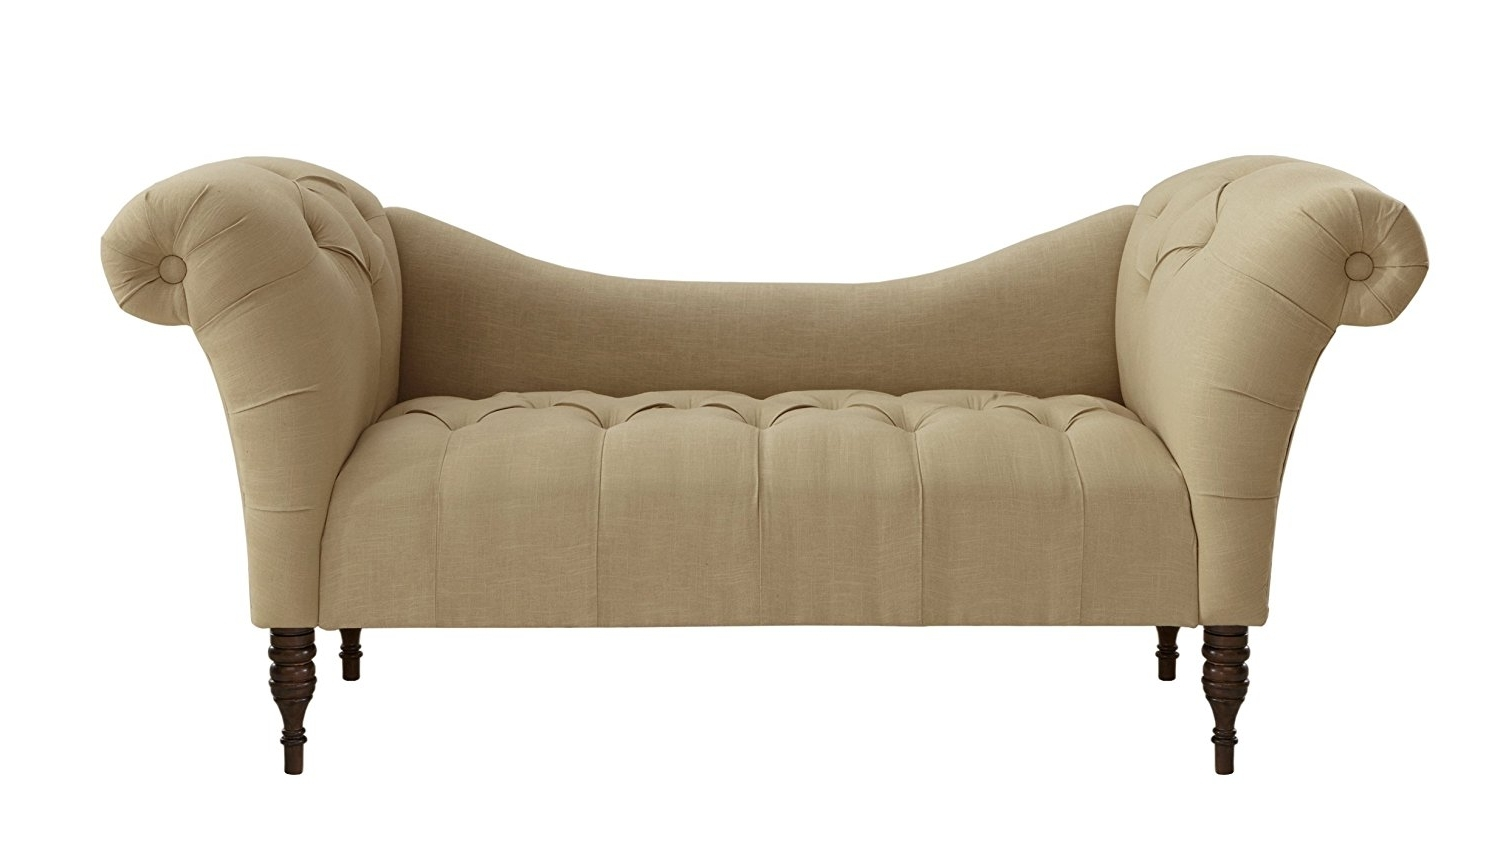 Chaise Benchs Pertaining To Trendy Amazon: Skyline Furniture Tufted Chaise Lounge In Linen (View 6 of 15)